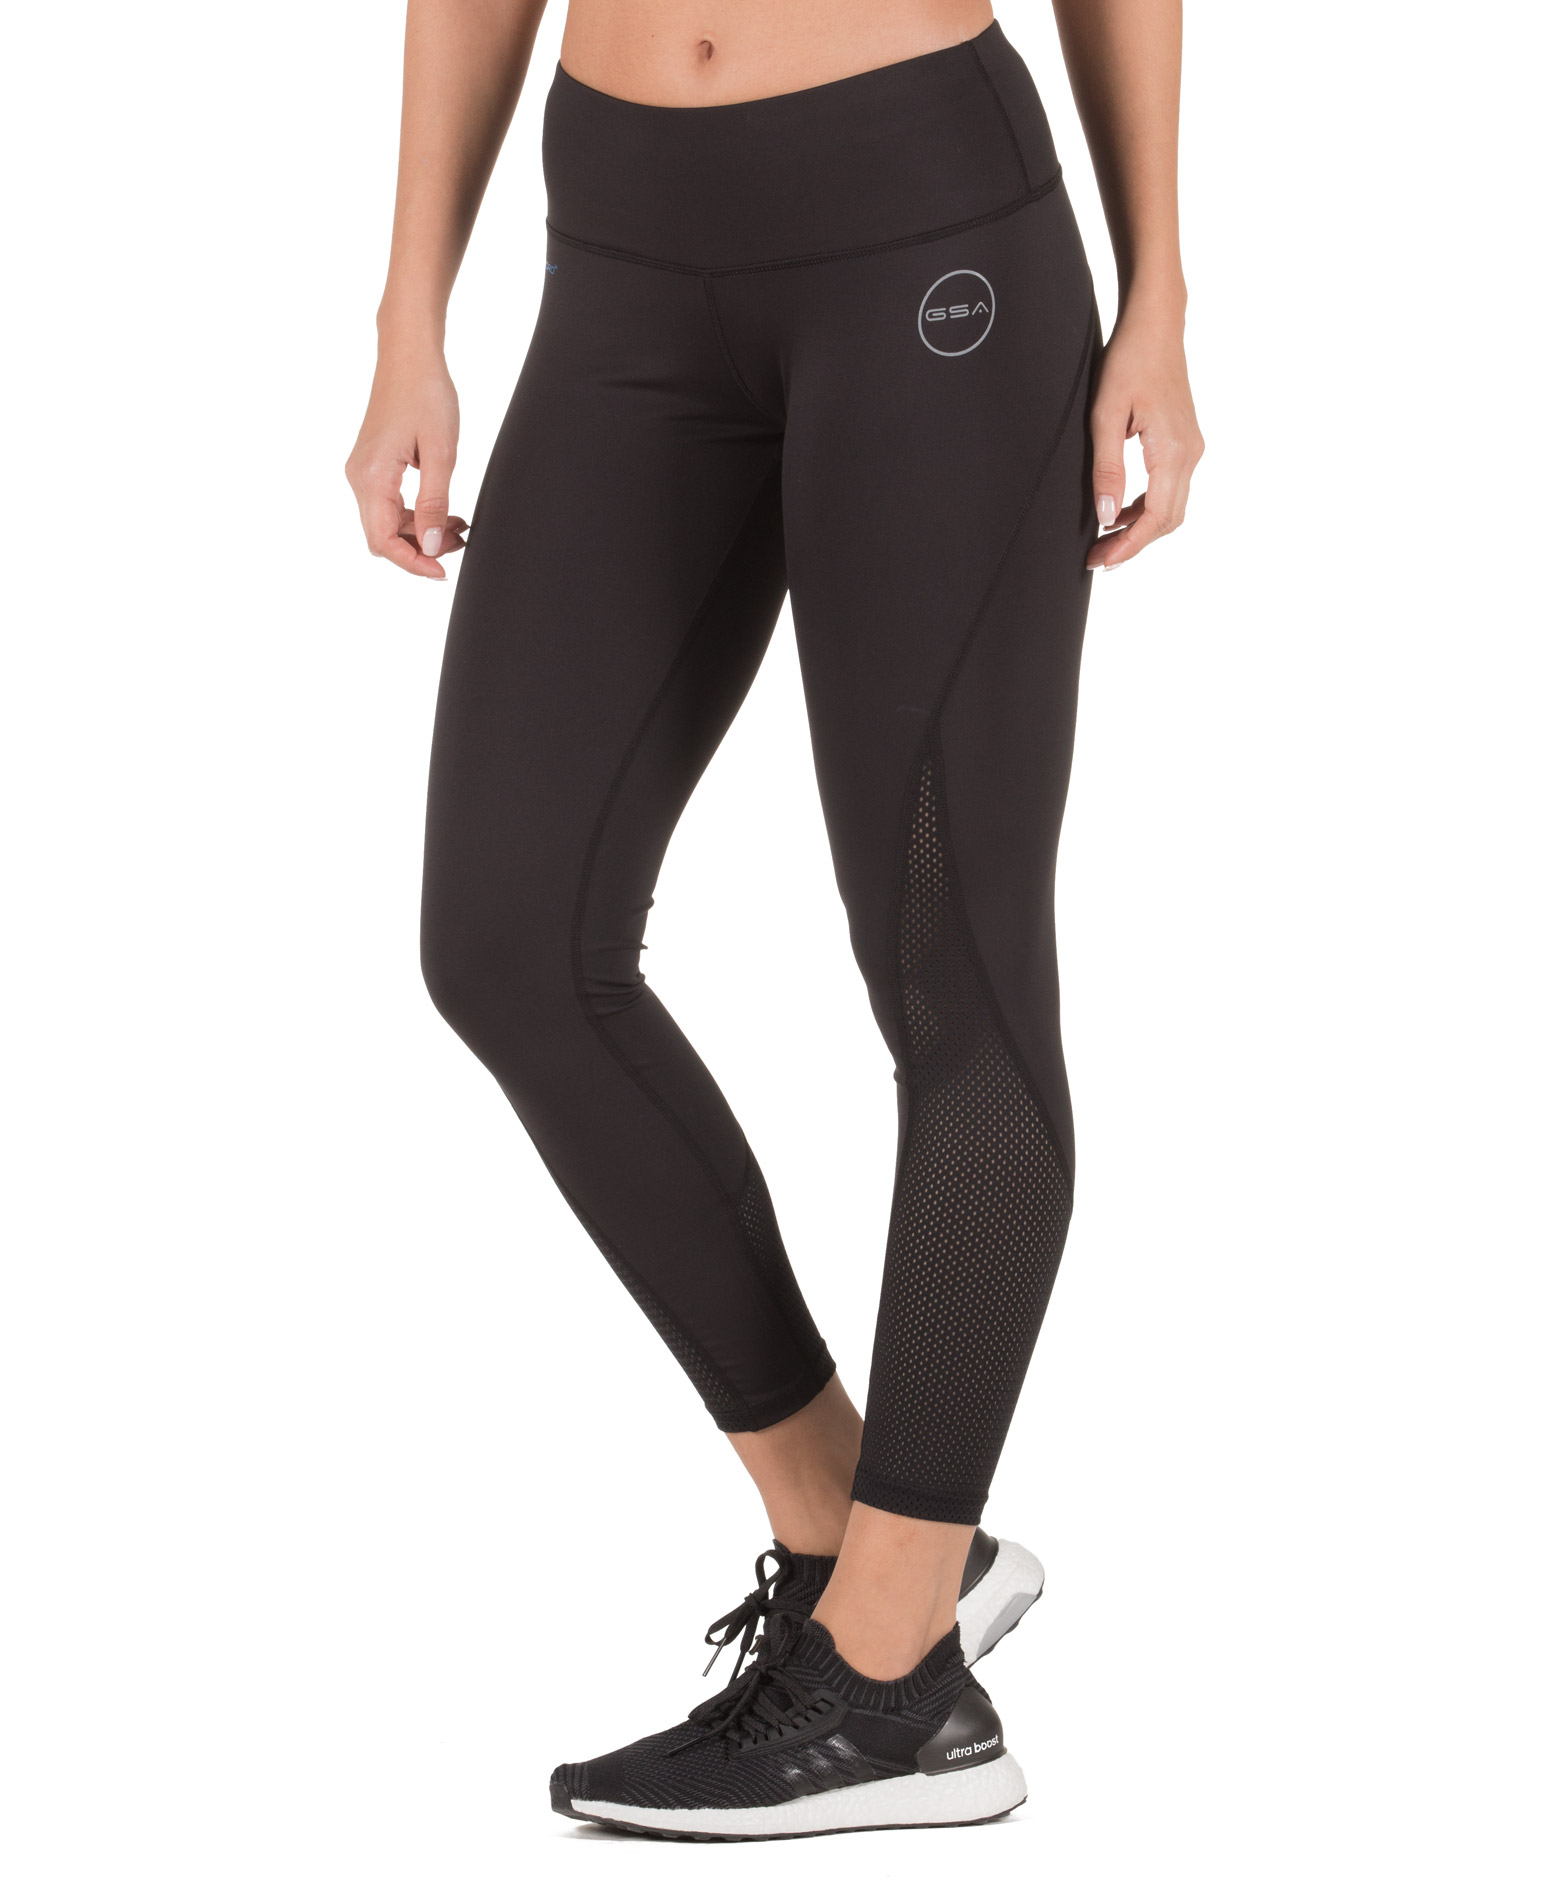 GSA HYDRO PERFORMANCE COMPRESSION LEGGINGS 17-28011-01 JET BLACK Μαύρο